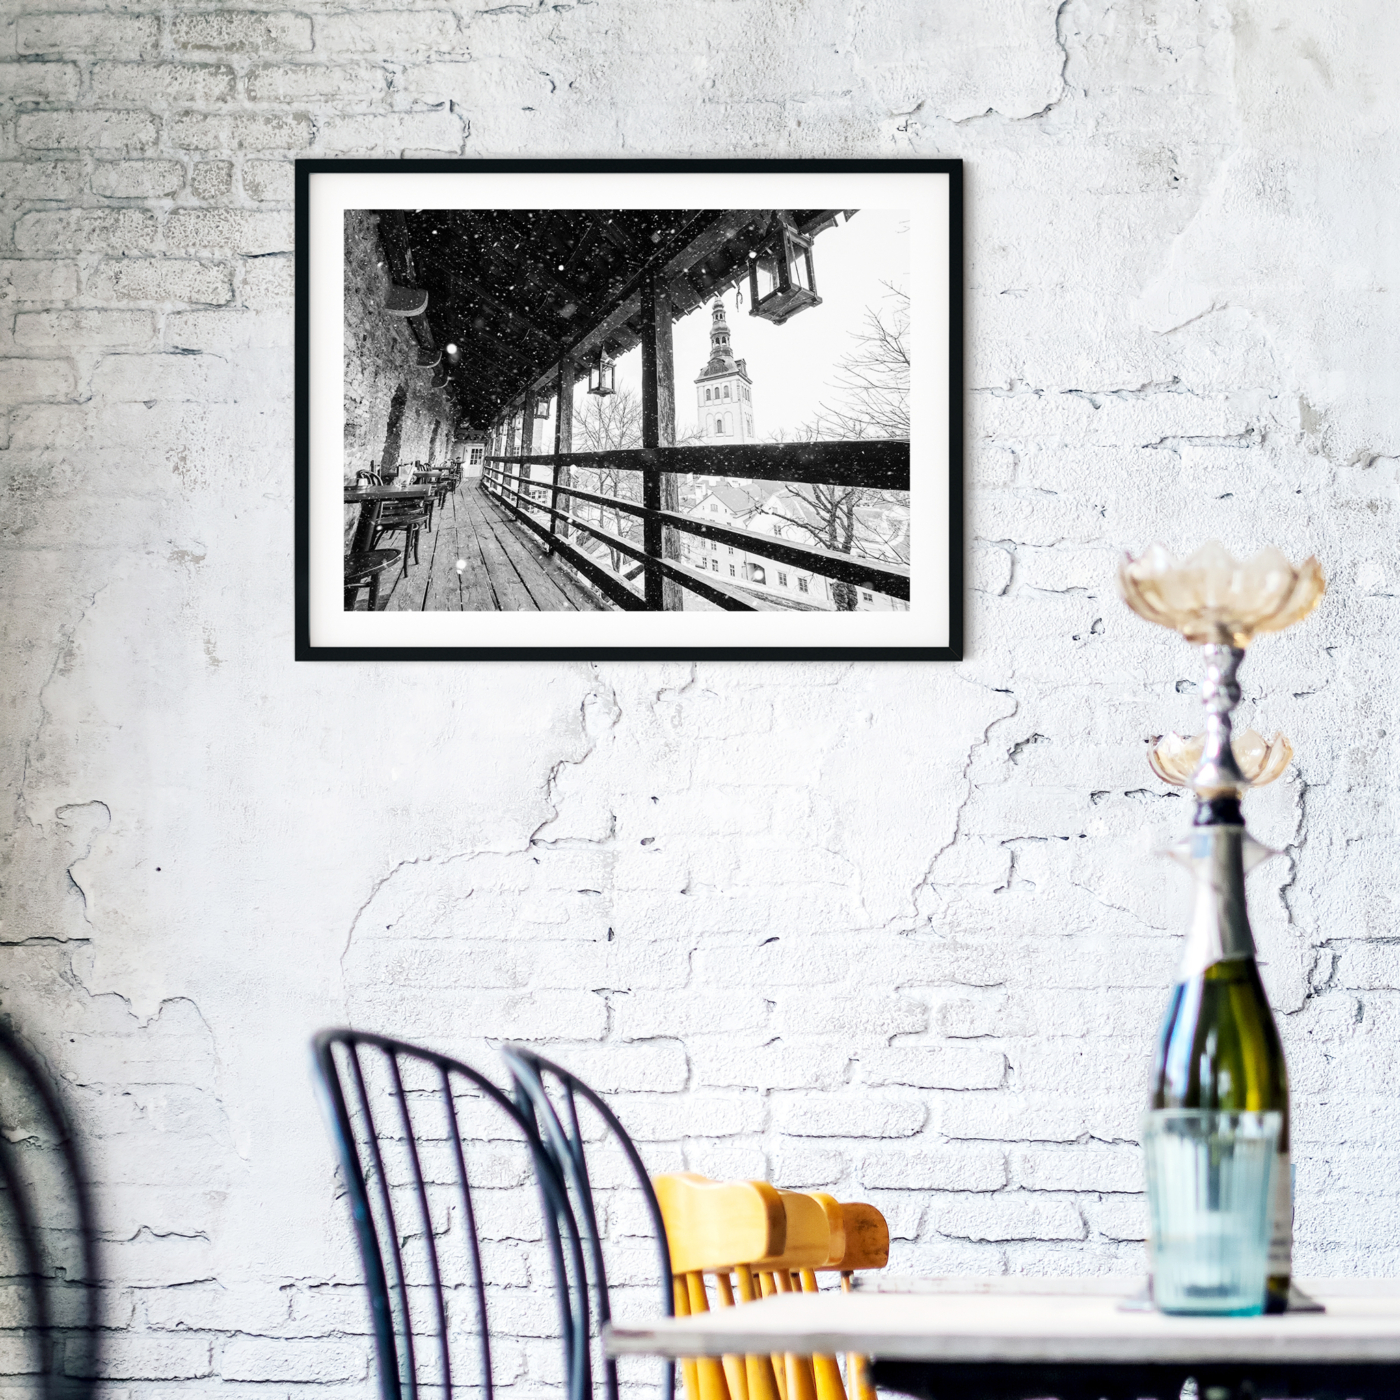 Winter in Tallinn - black and white photography print with border in cafe interior